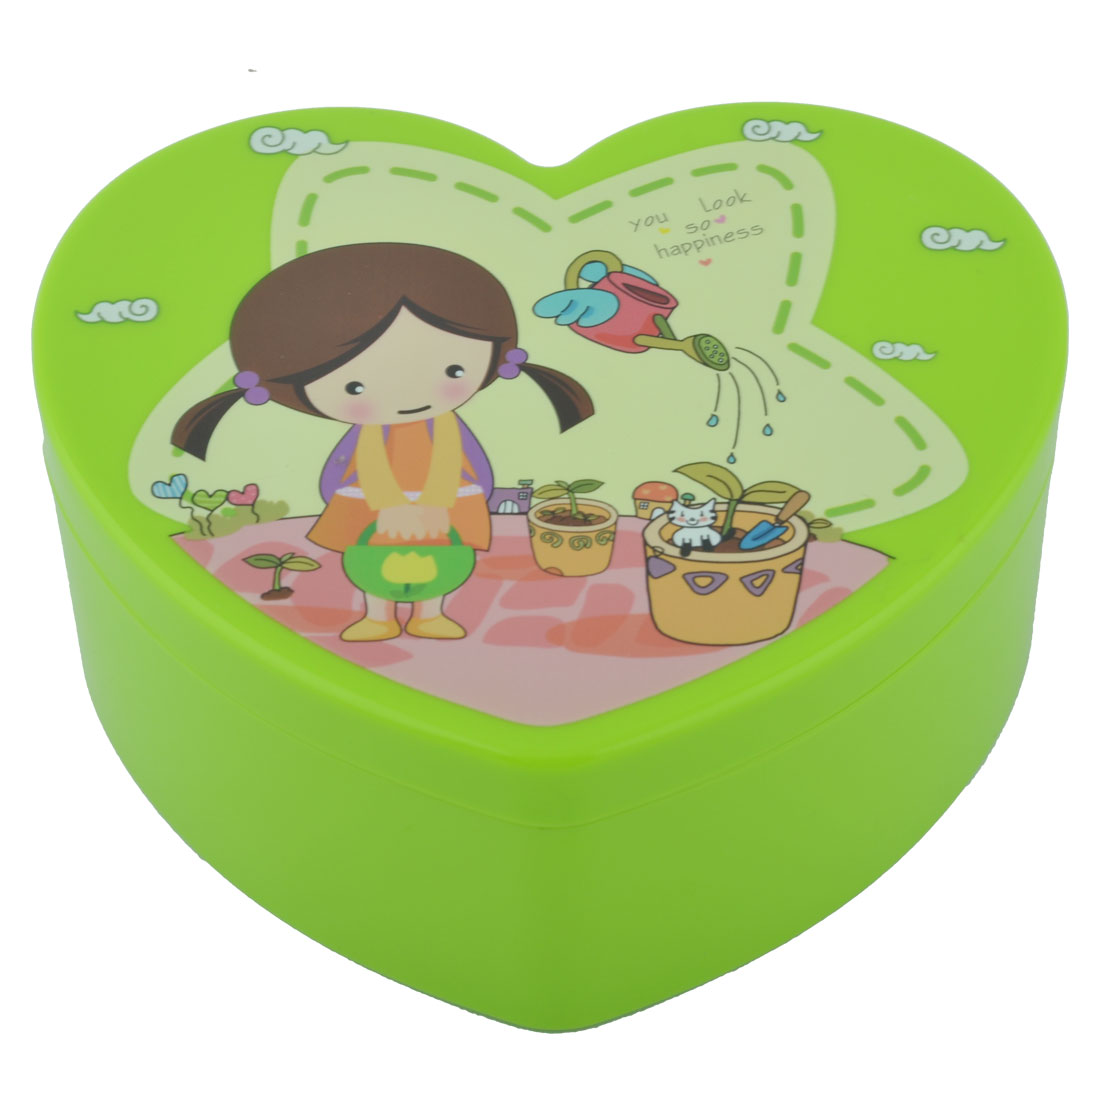 Lady Plastic Heart Shape Cosmetic Organizer Makeup Jewelry Storage Box Green